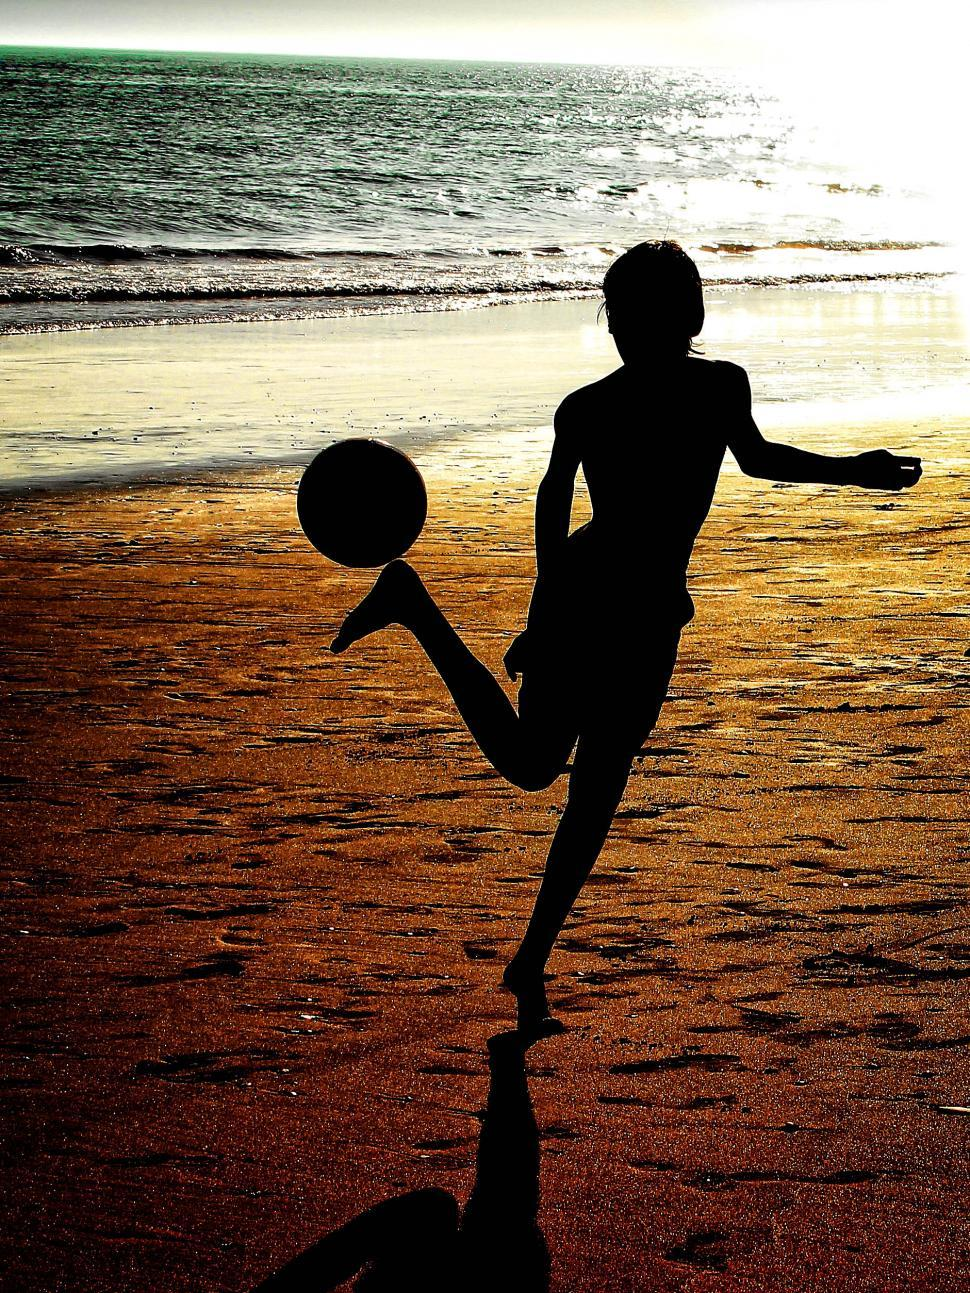 Download Free Stock HD Photo of Silhouette of a boy playing soccer at the beach - Grunge burned  Online